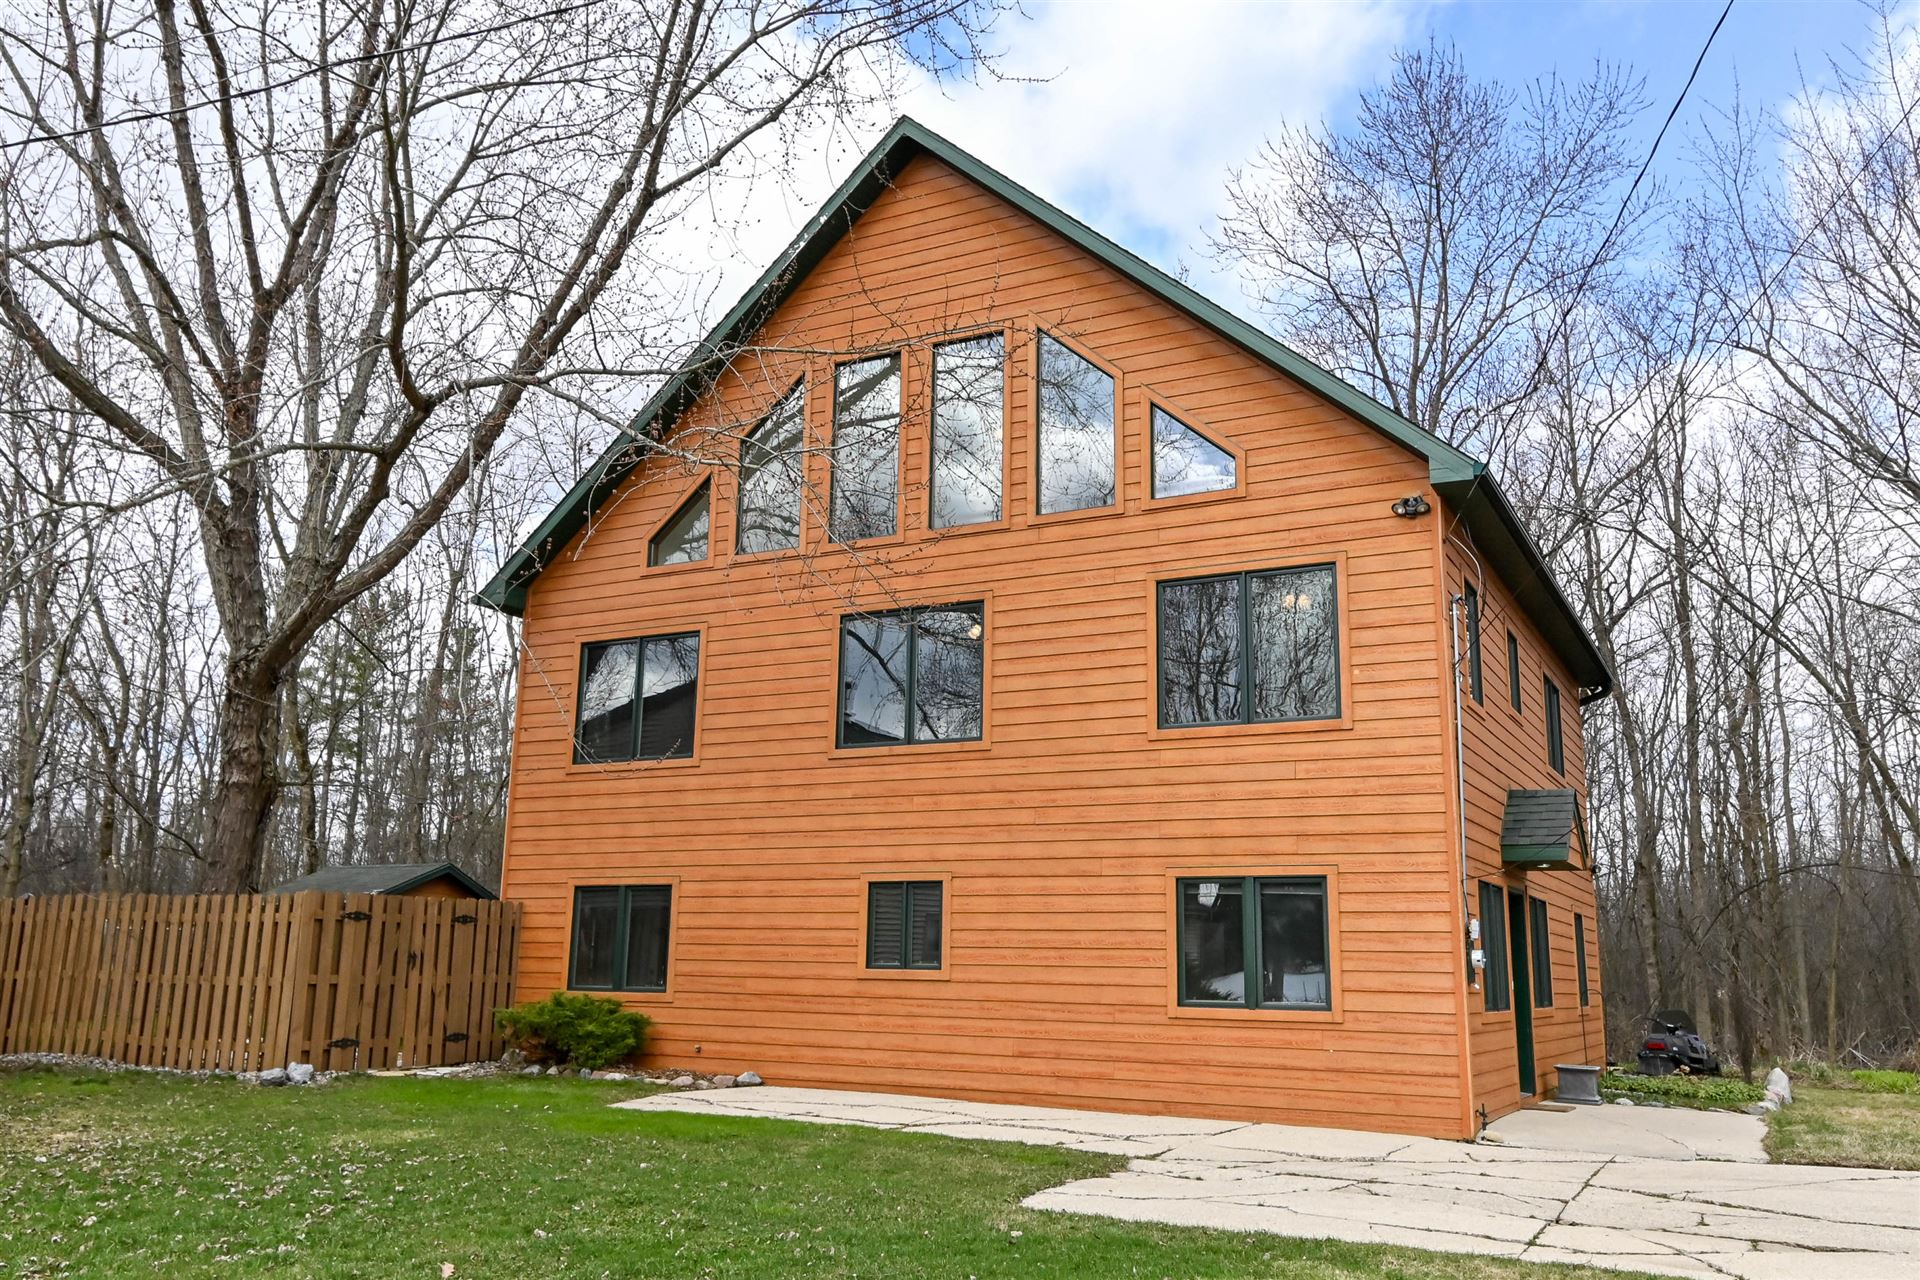 28913 Bark Ln, Waterford, WI 53185 - #: 1718932